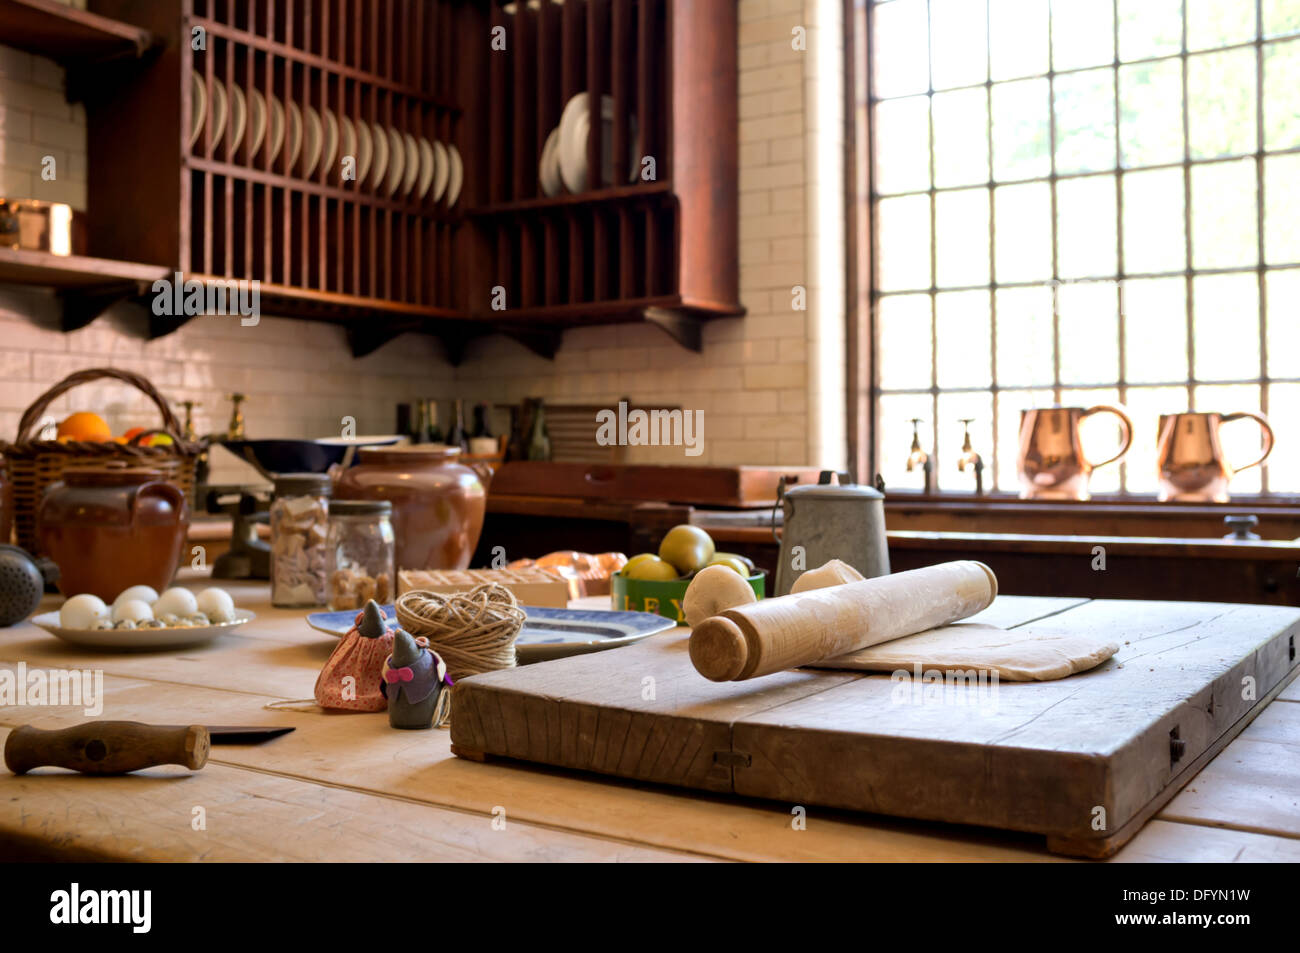 Rustic country style kitchen with cooking utensils. Stock Photo